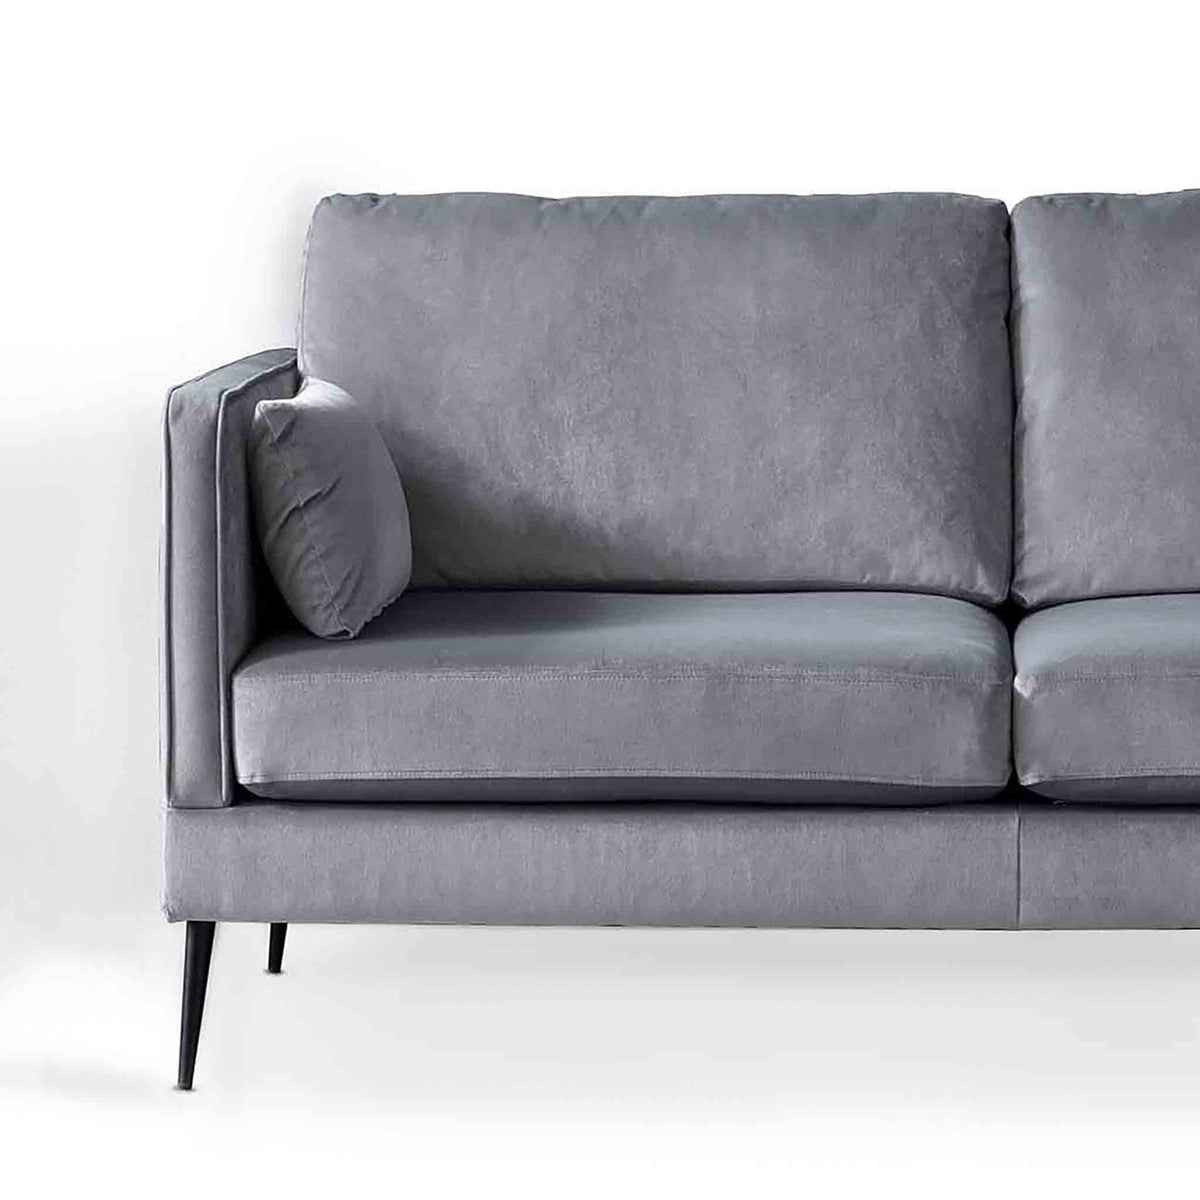 Anton Grey 2 Seater Sofa - Close up of sofa